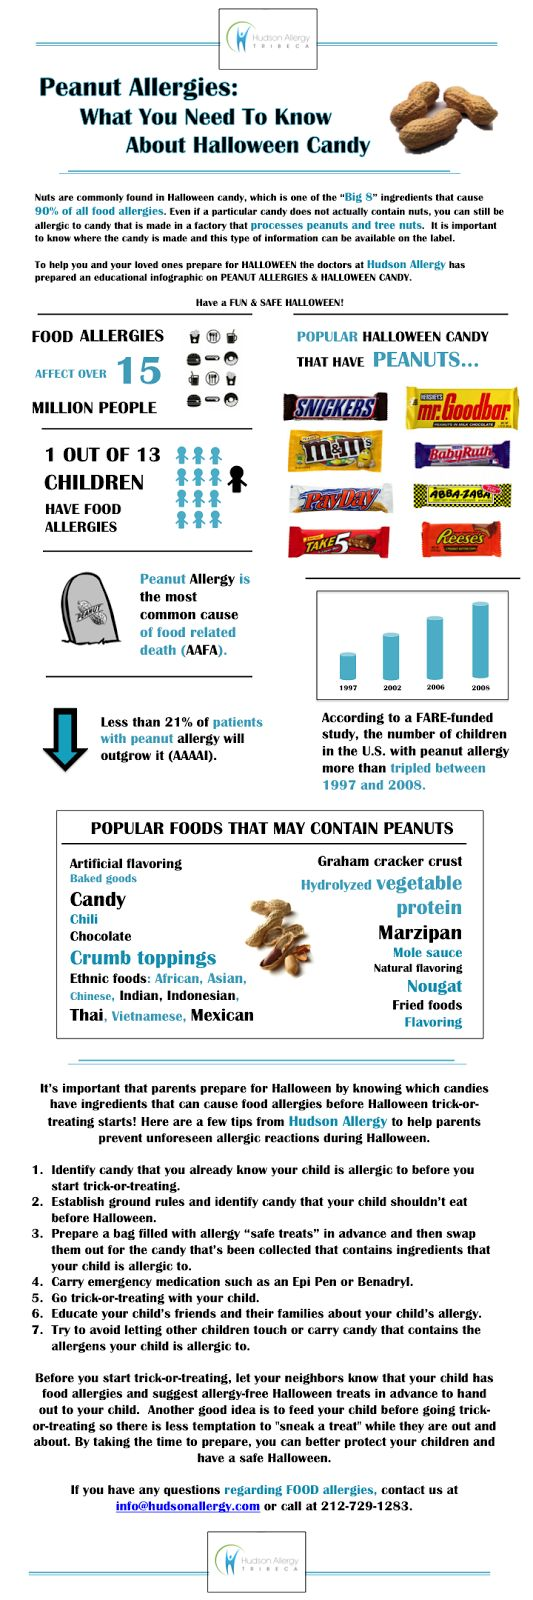 Peanut Allergies:  What you need to know about Halloween candy